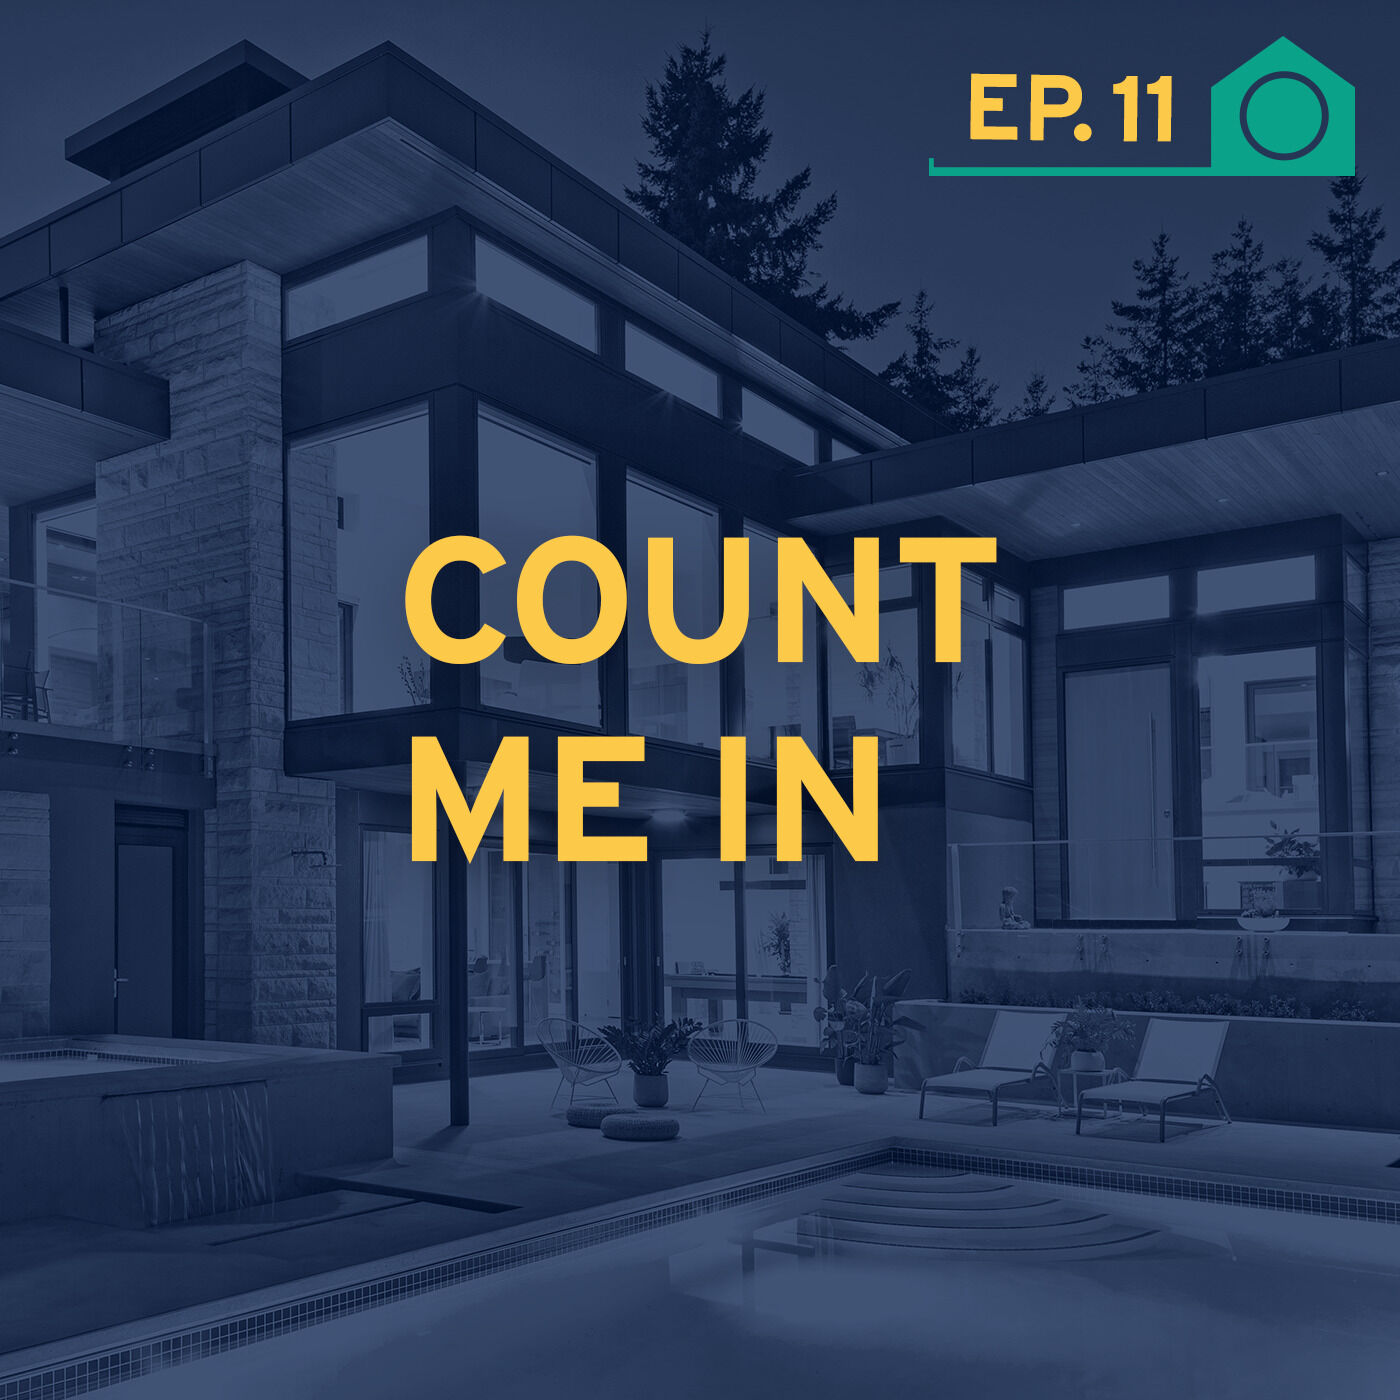 Count Me In! Aging in place and adaptability housing solutions